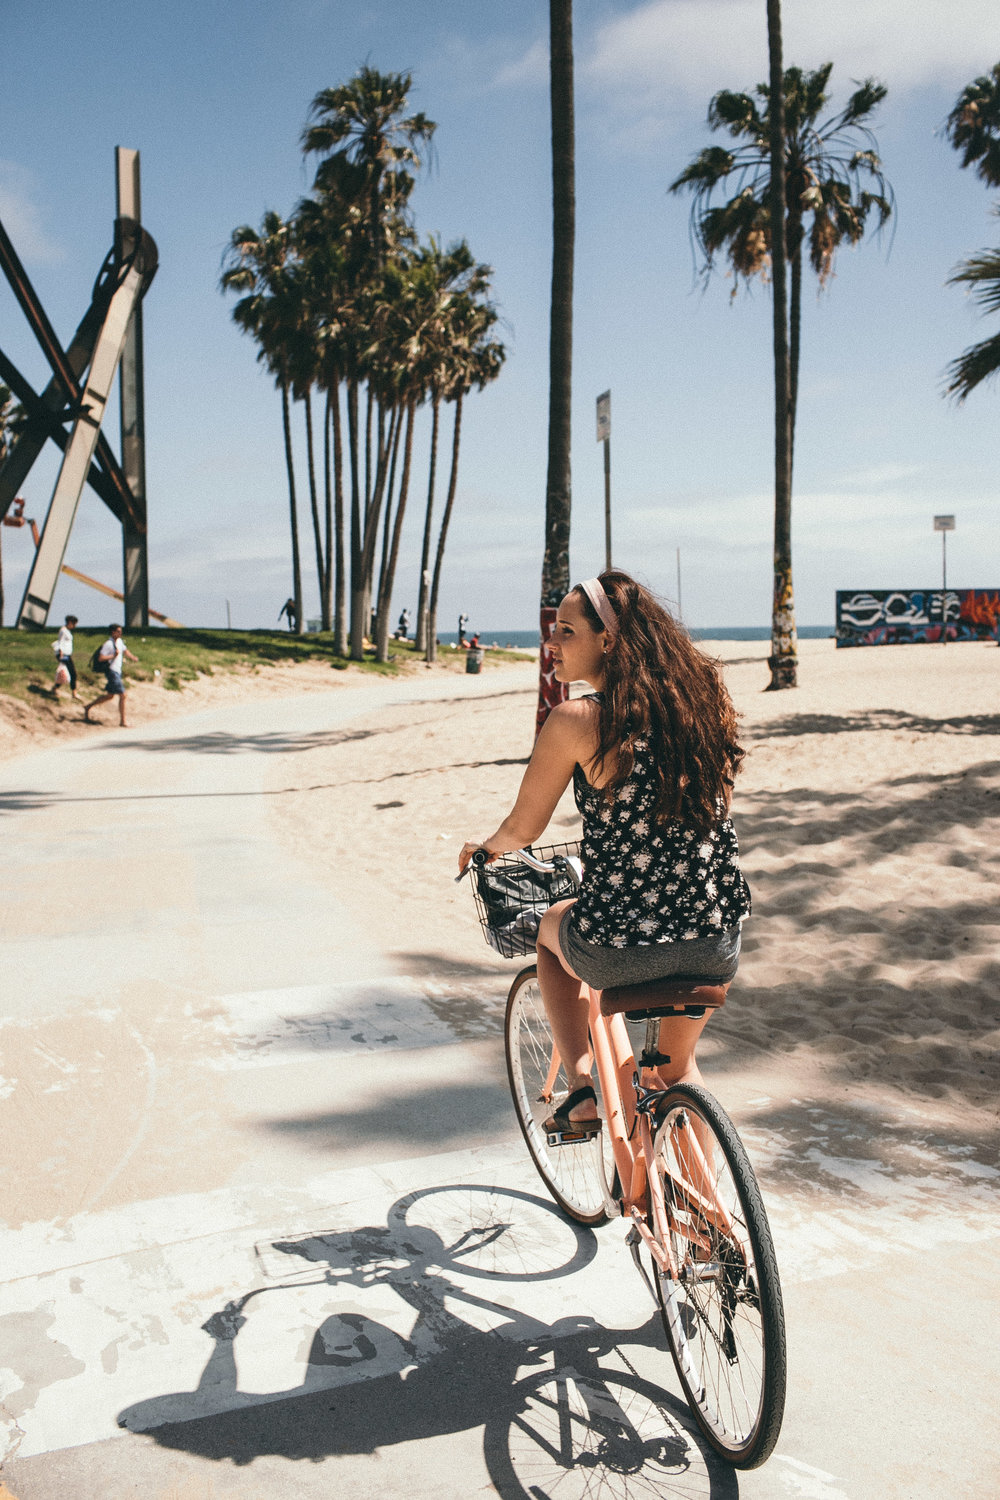 Bike Ride in Venice Beach - Venice Boardwalk